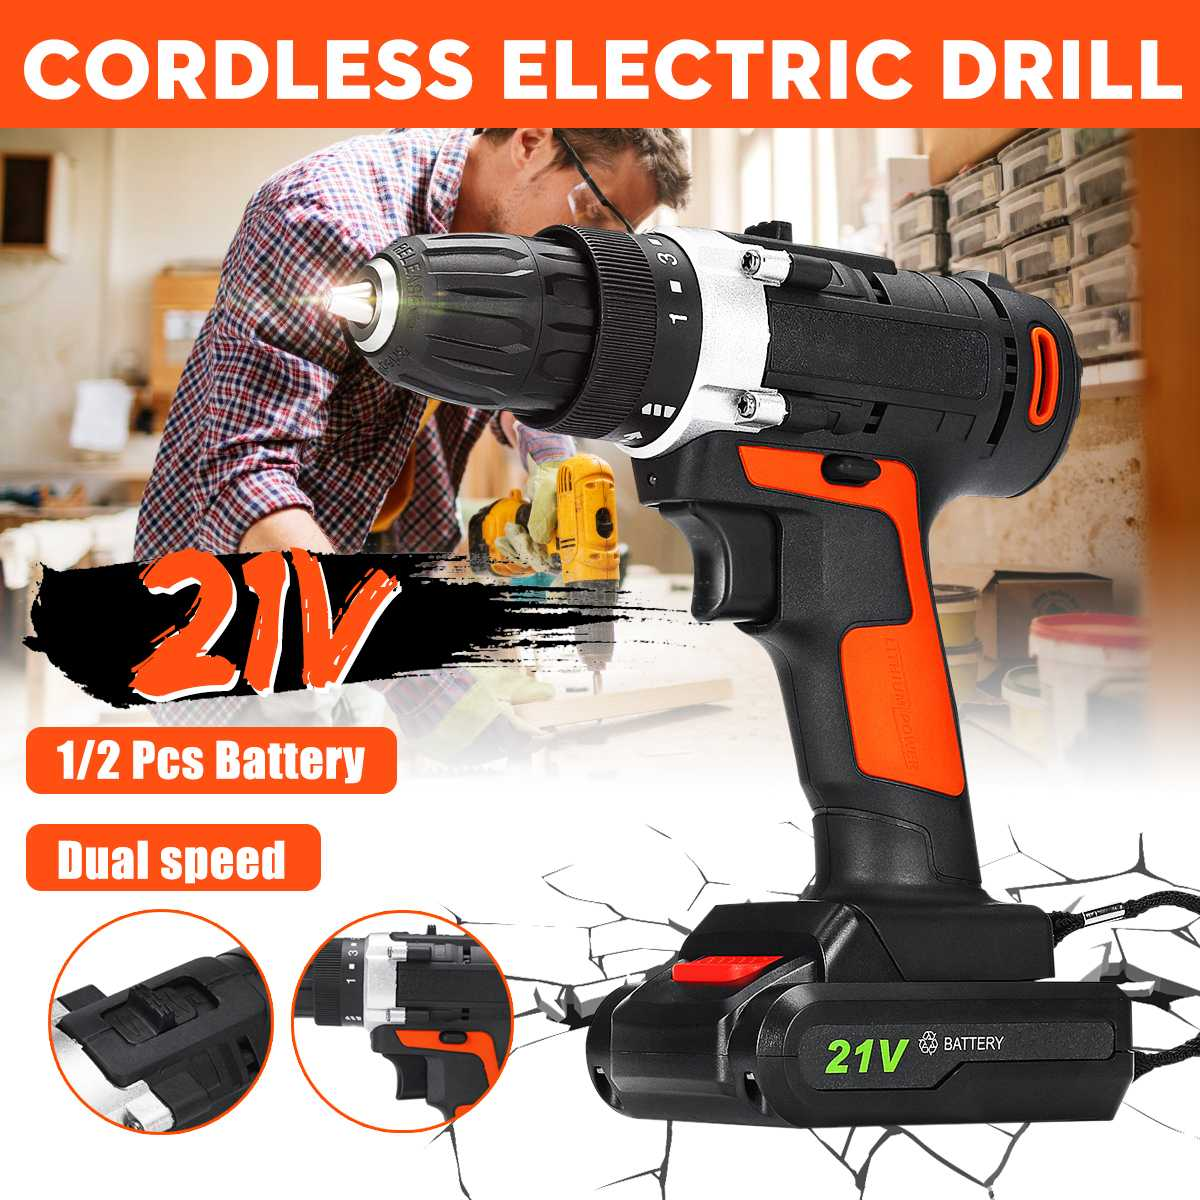 21V 2 Speed Cordless Electric Drill Bits Electric Screwdriver Impact Wrench Kit LED light Rechargeable with 2 Battery Power Tool21V 2 Speed Cordless Electric Drill Bits Electric Screwdriver Impact Wrench Kit LED light Rechargeable with 2 Battery Power Tool